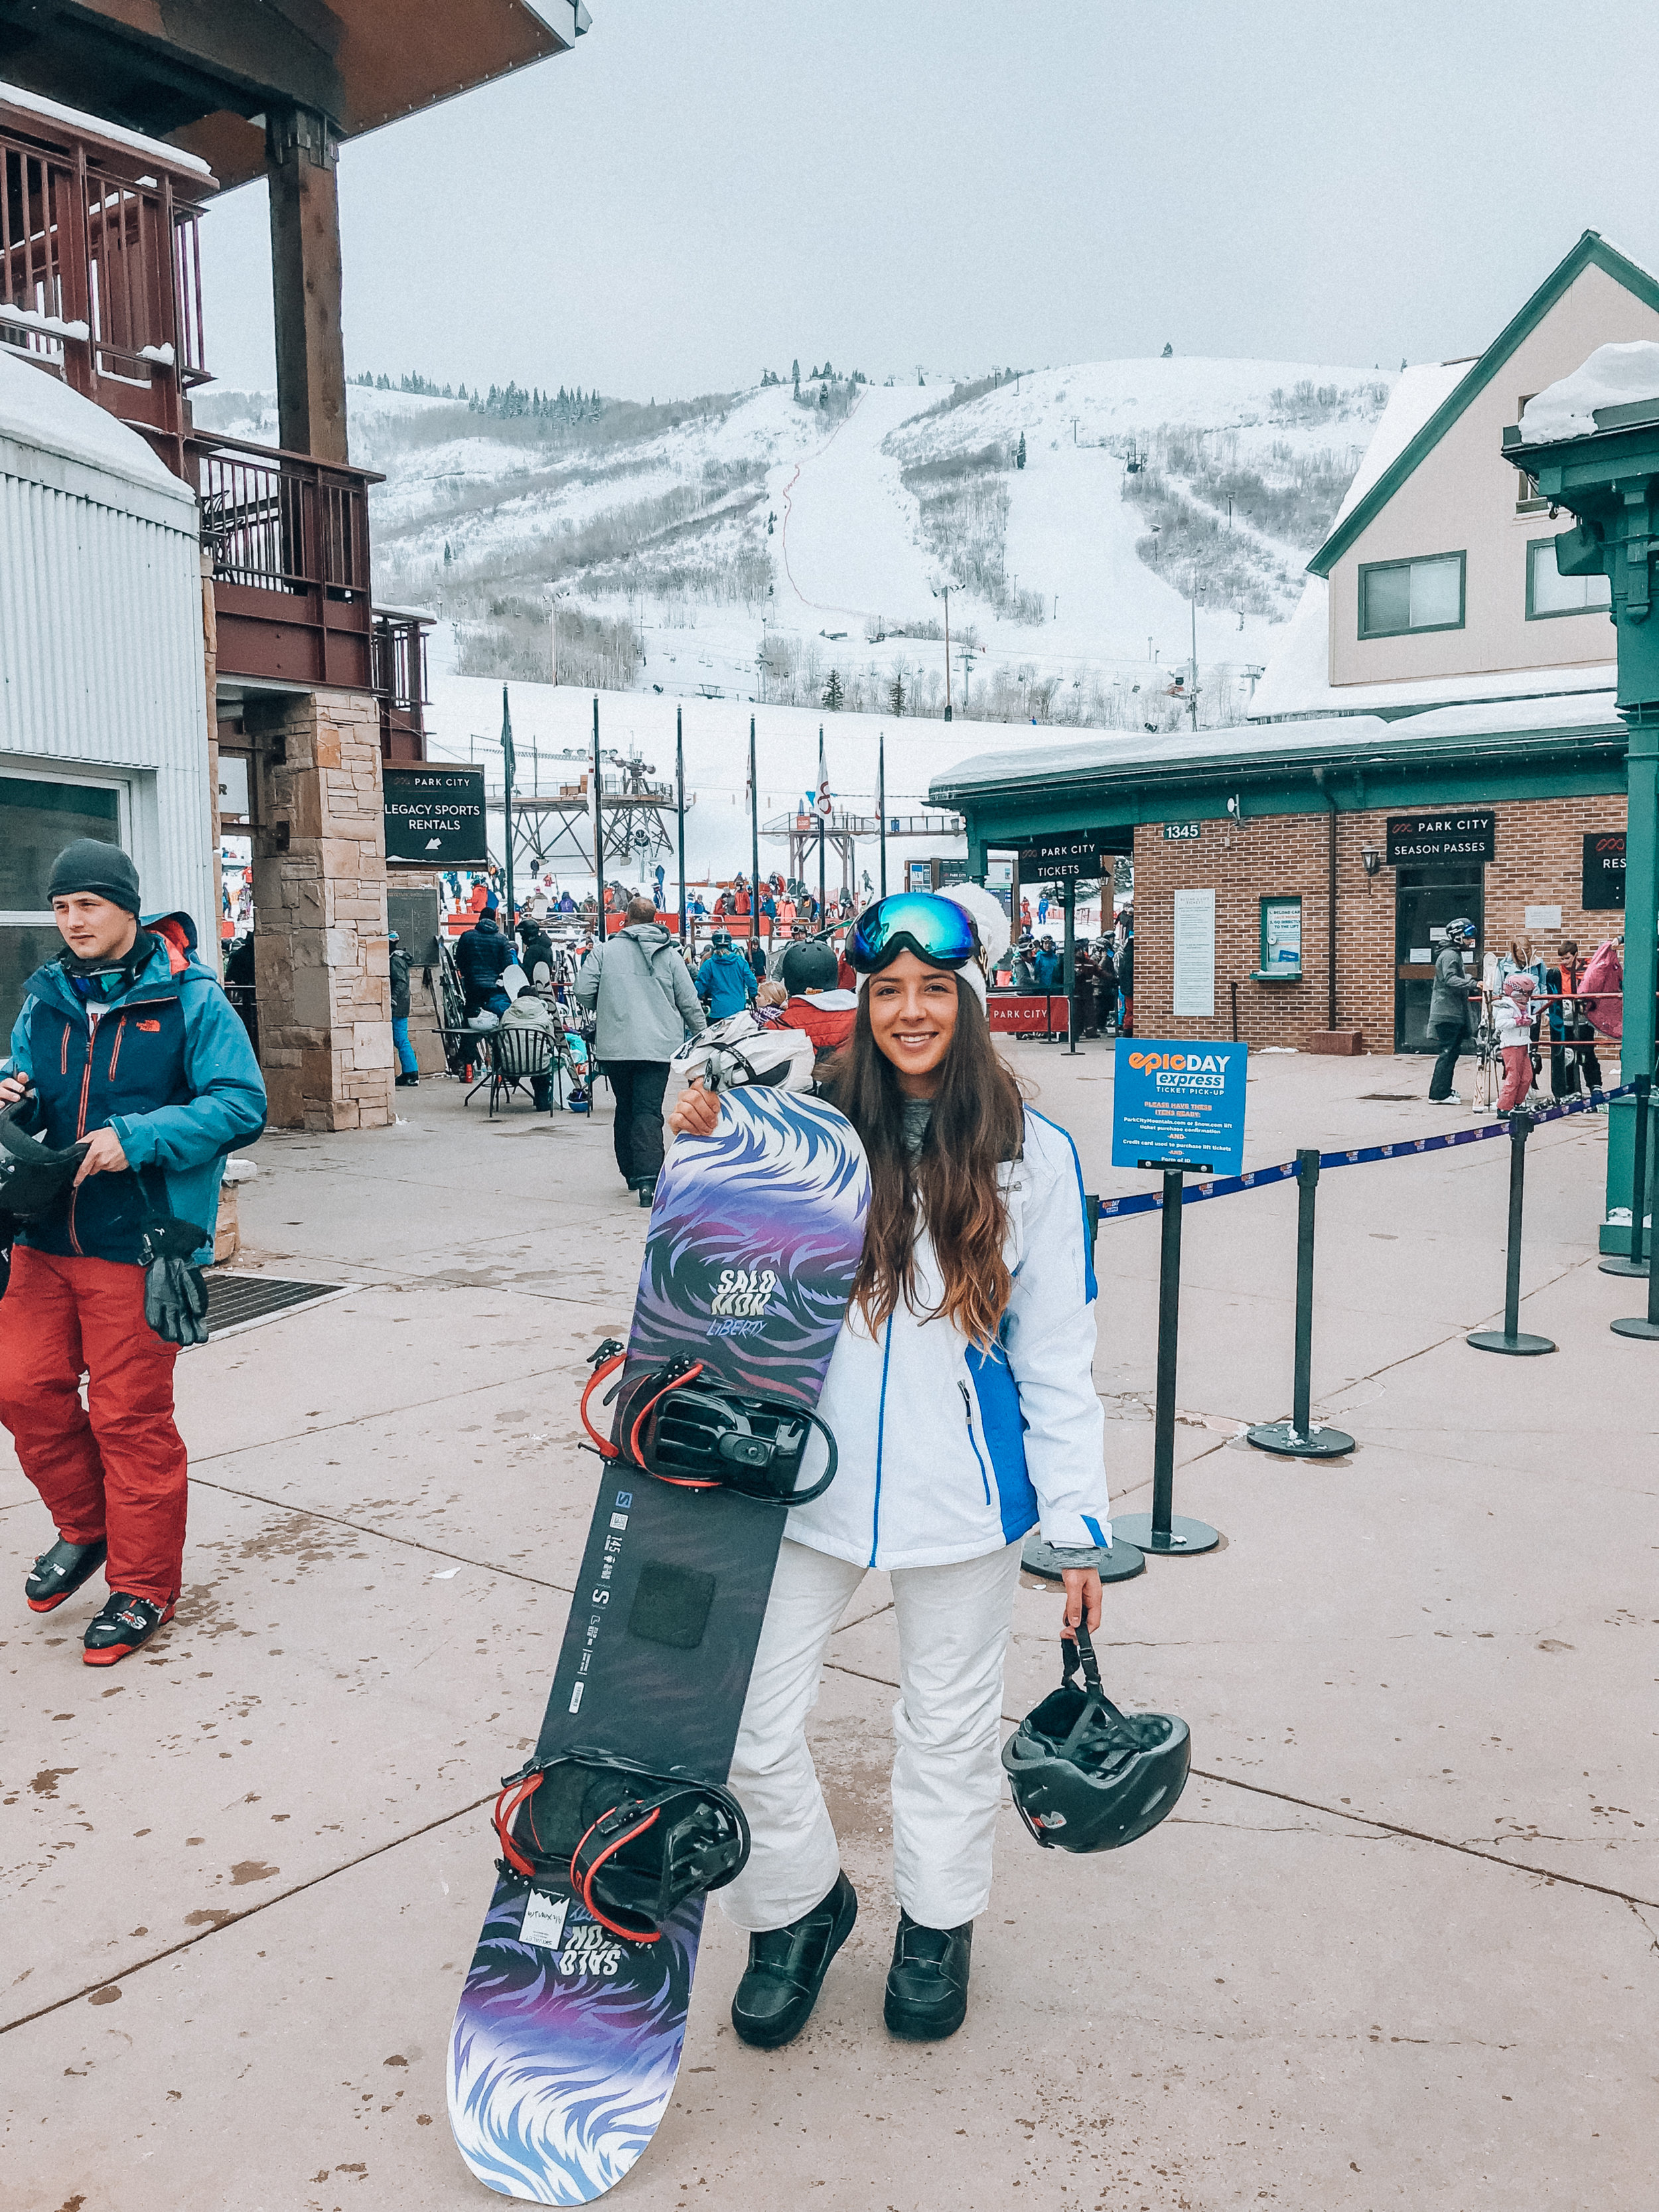 Park City Ski Resort - (Pricey but worth the experience & views)